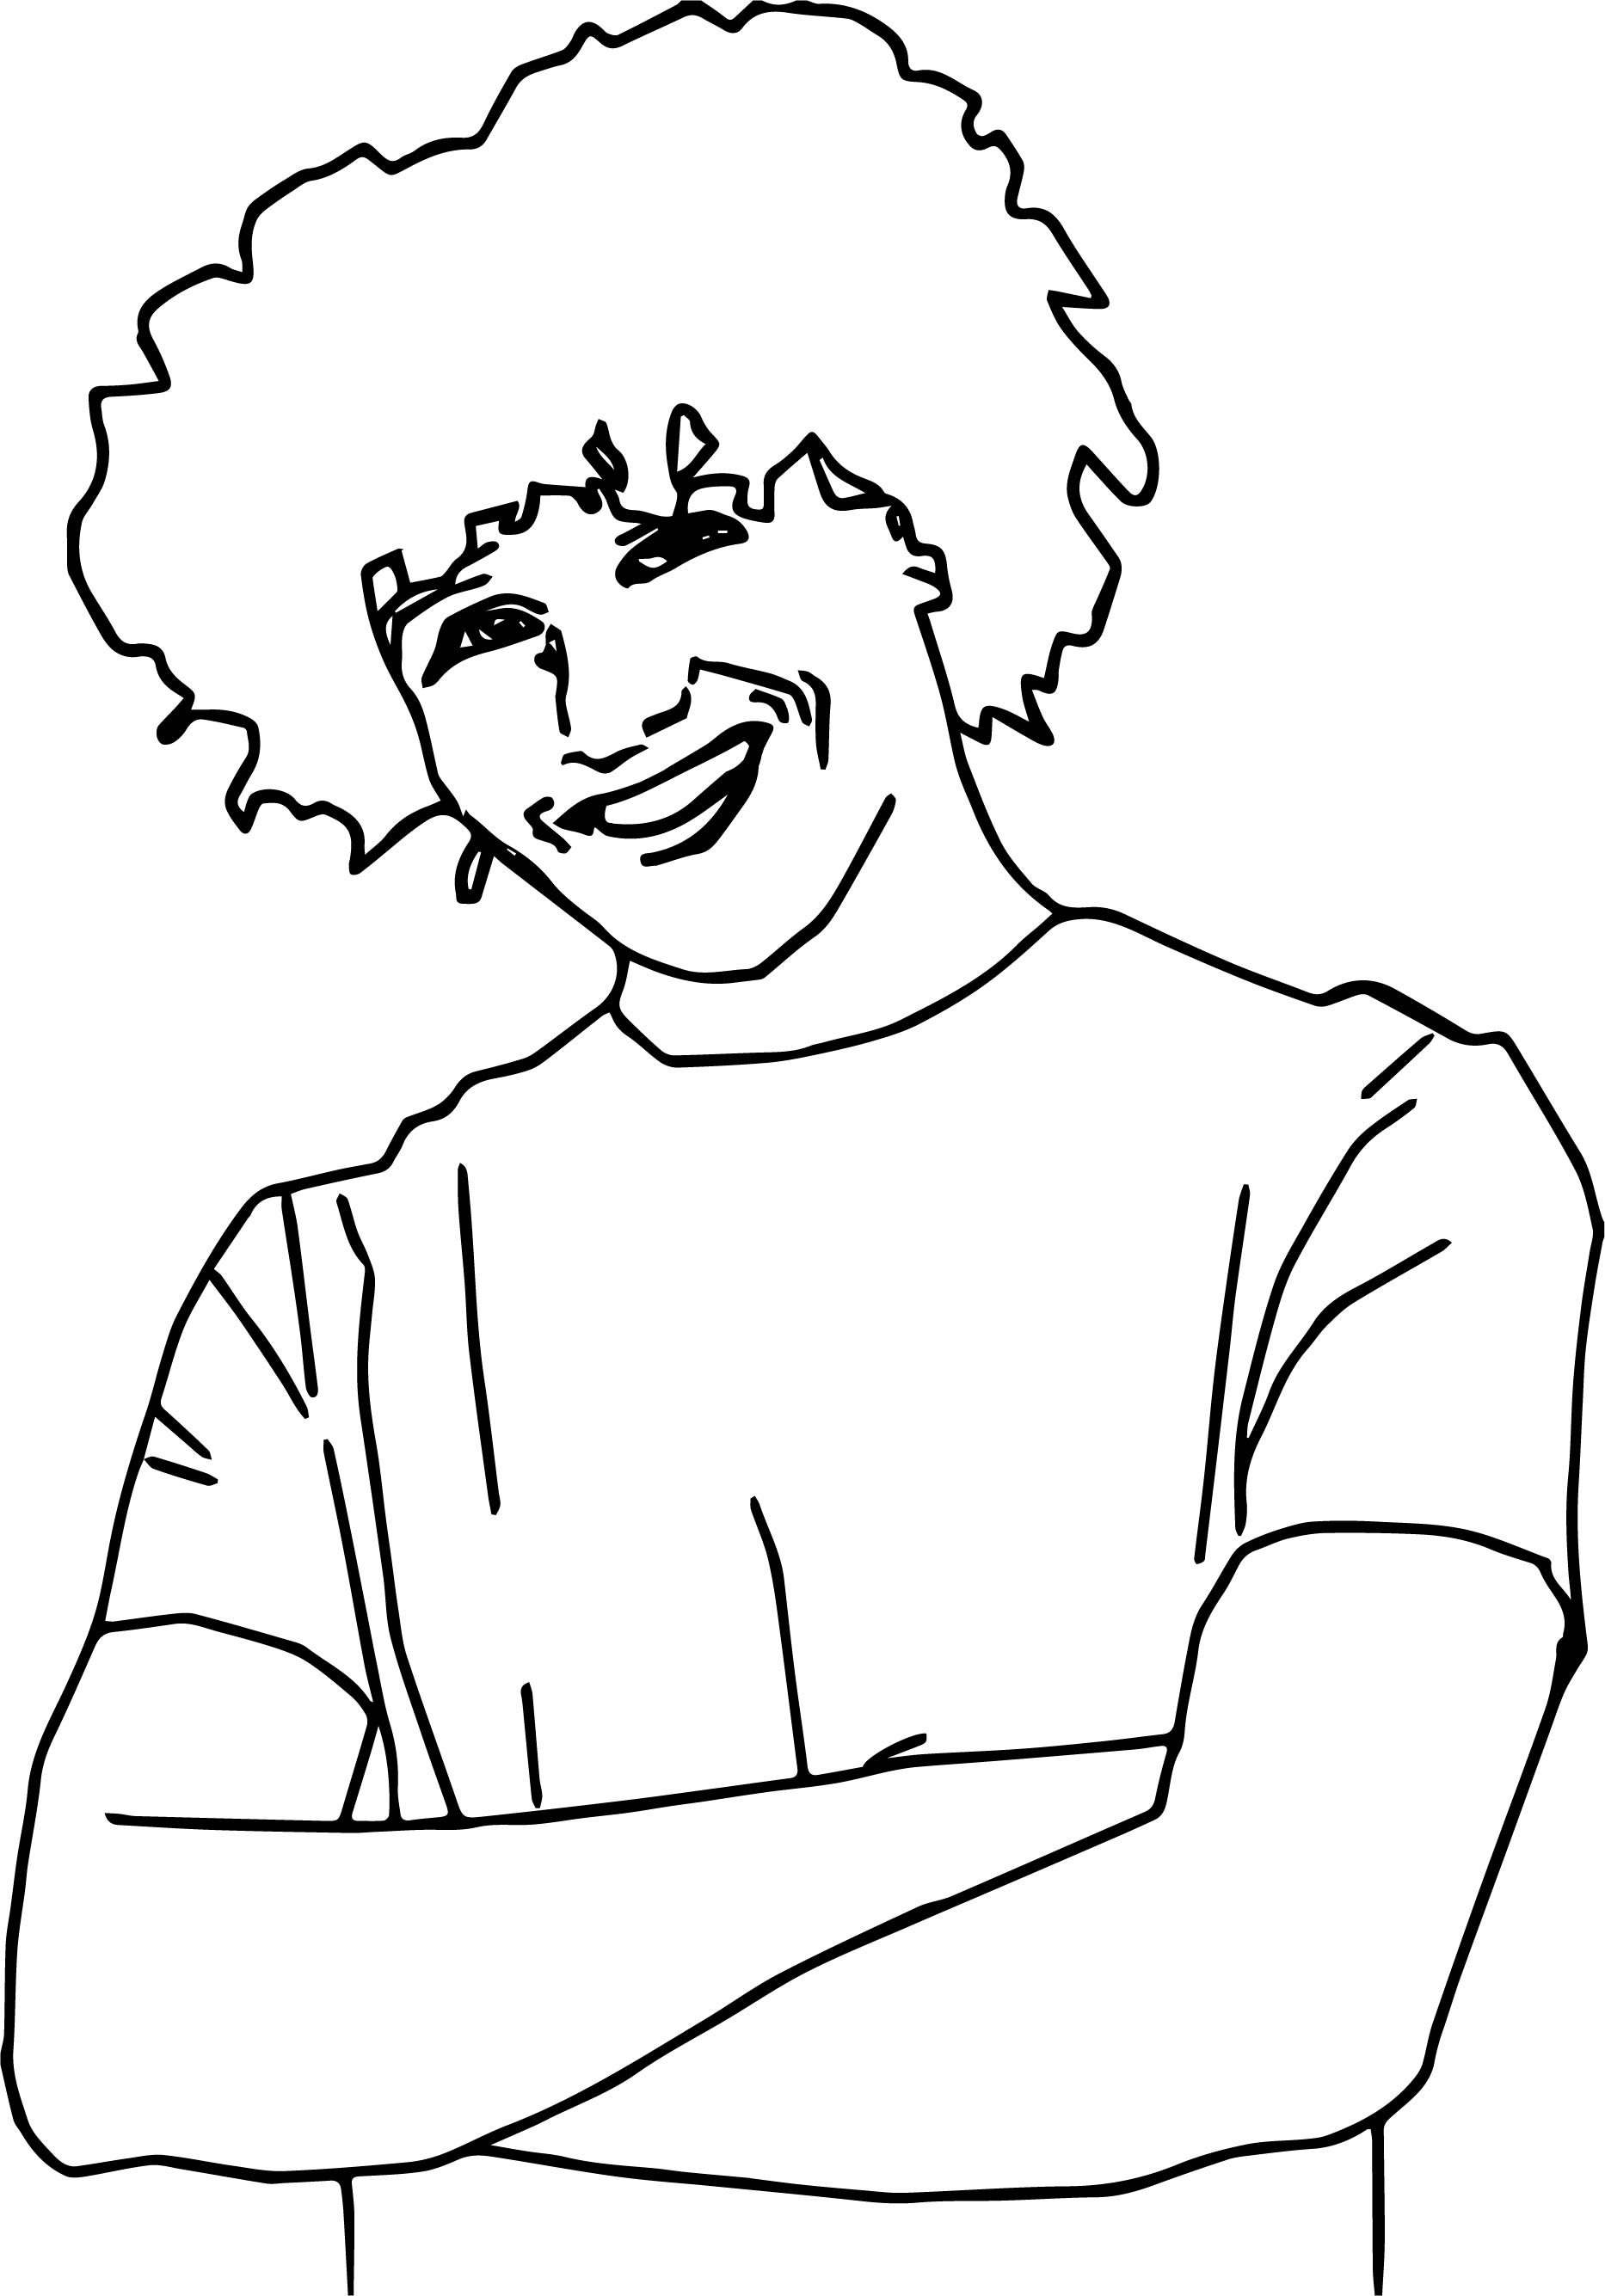 coloring pages of highscool - photo#26